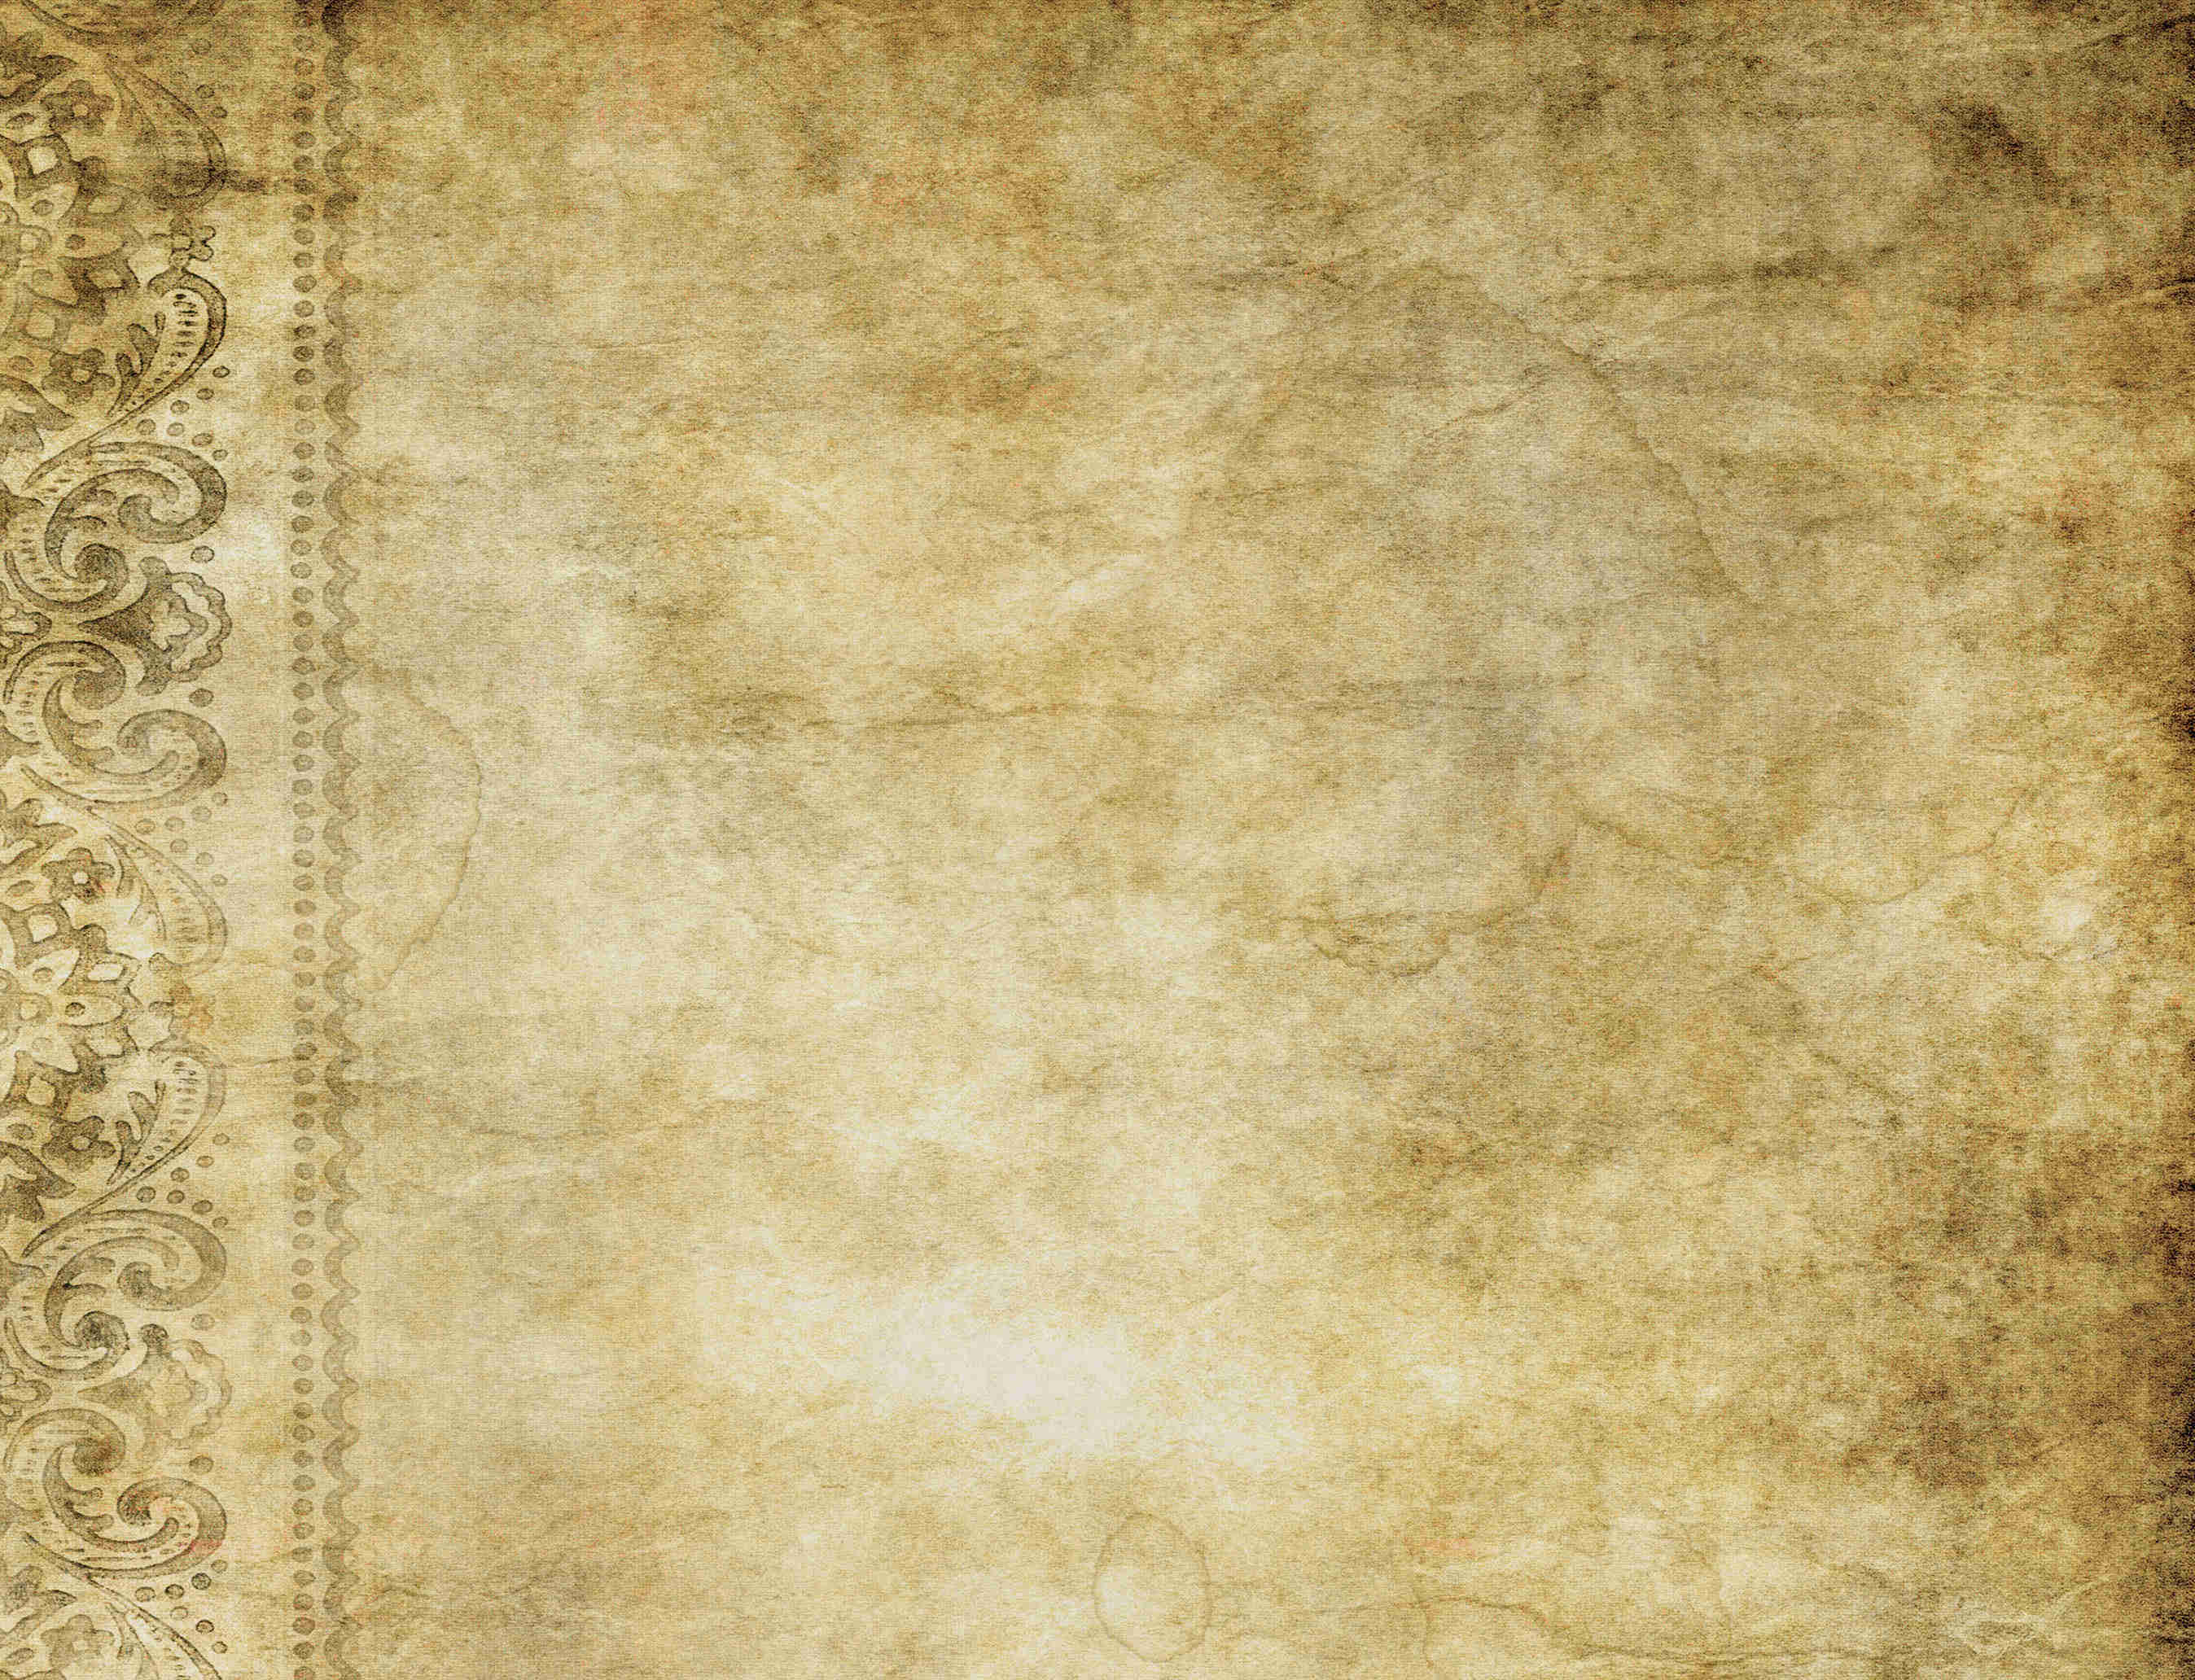 30  aged paper textures  photoshop textures